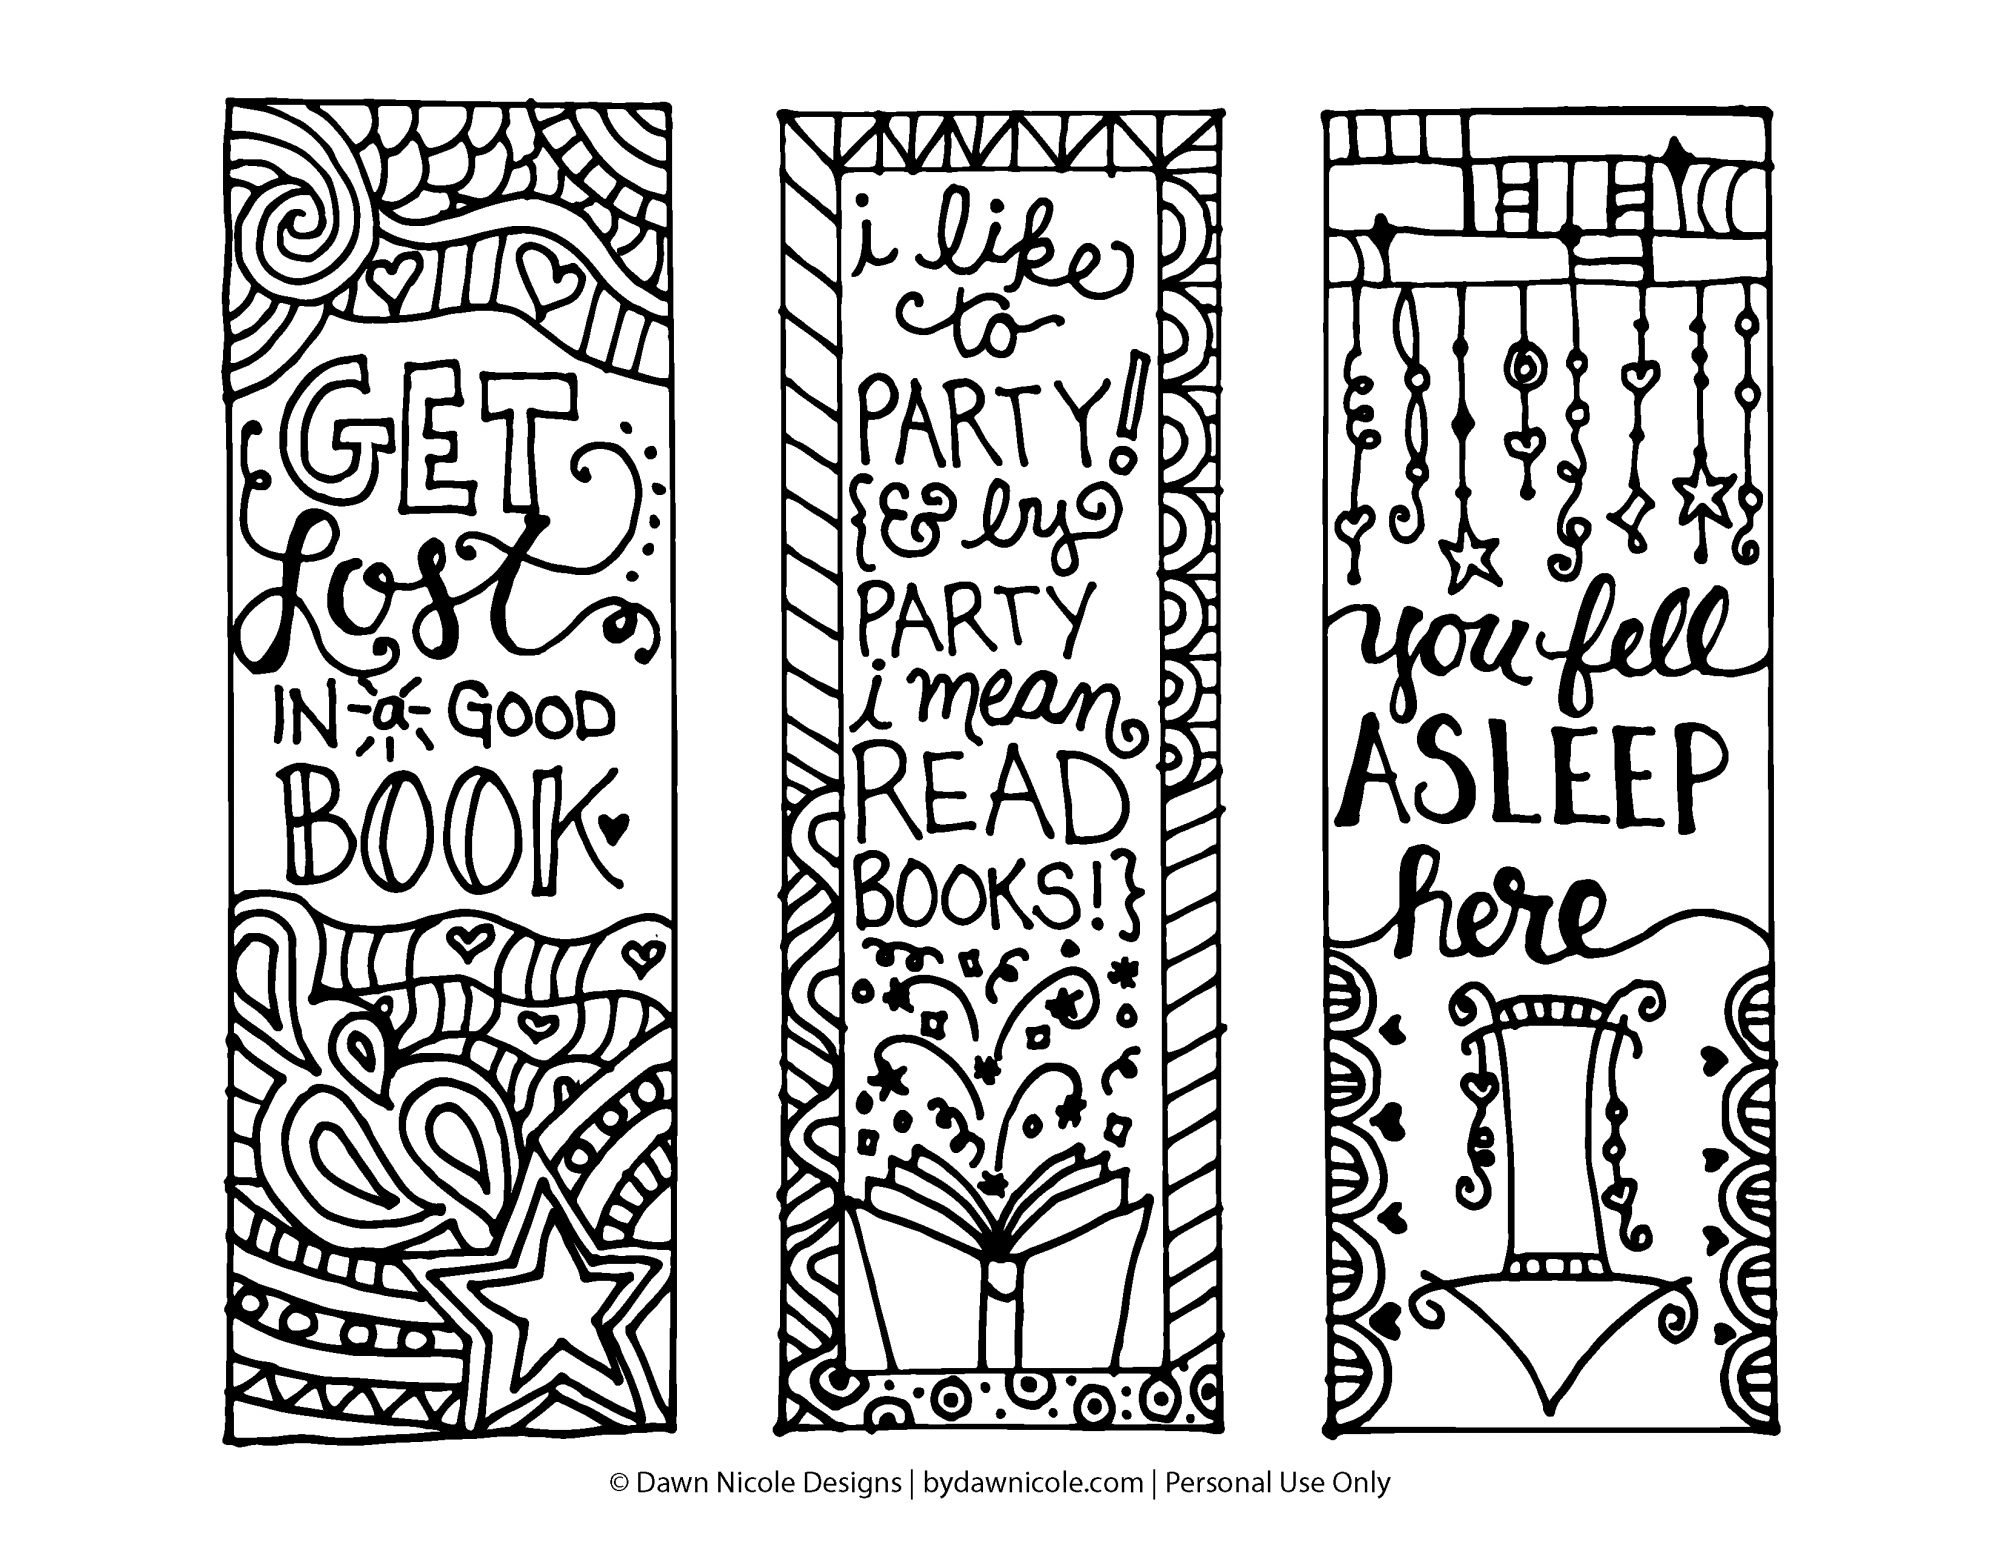 Free Printable Coloring Page Bookmarks | Dawn Nicole Designs® - Free Printable Bookmarks For Libraries